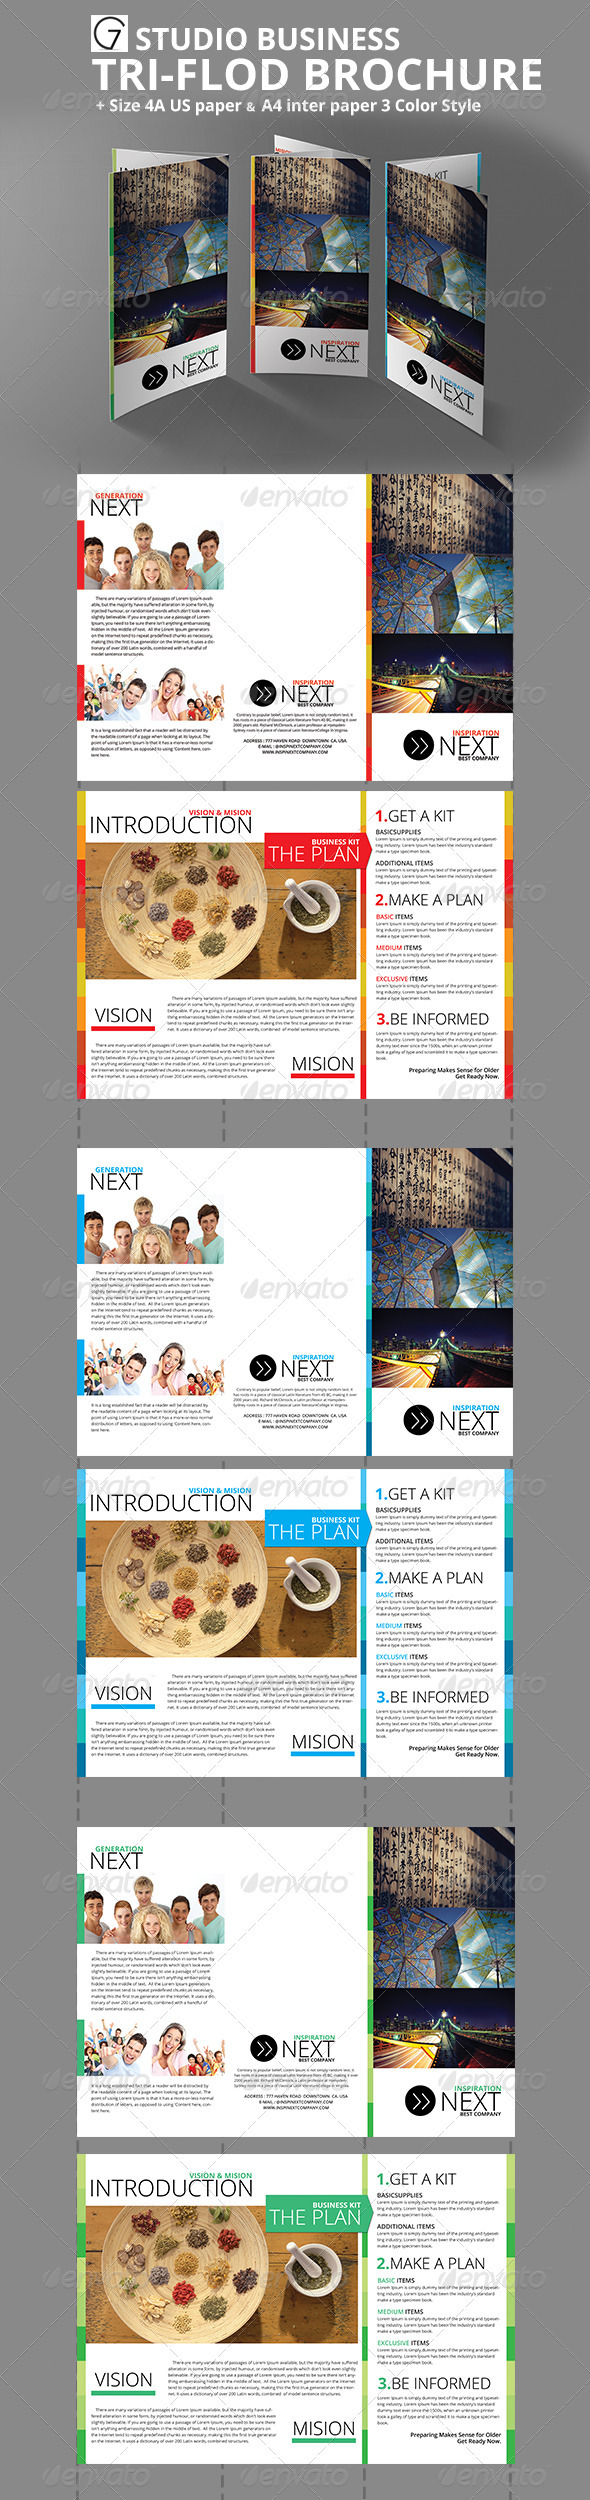 GraphicRiver Gstudio Business Tri-Fold Brochure 3670177